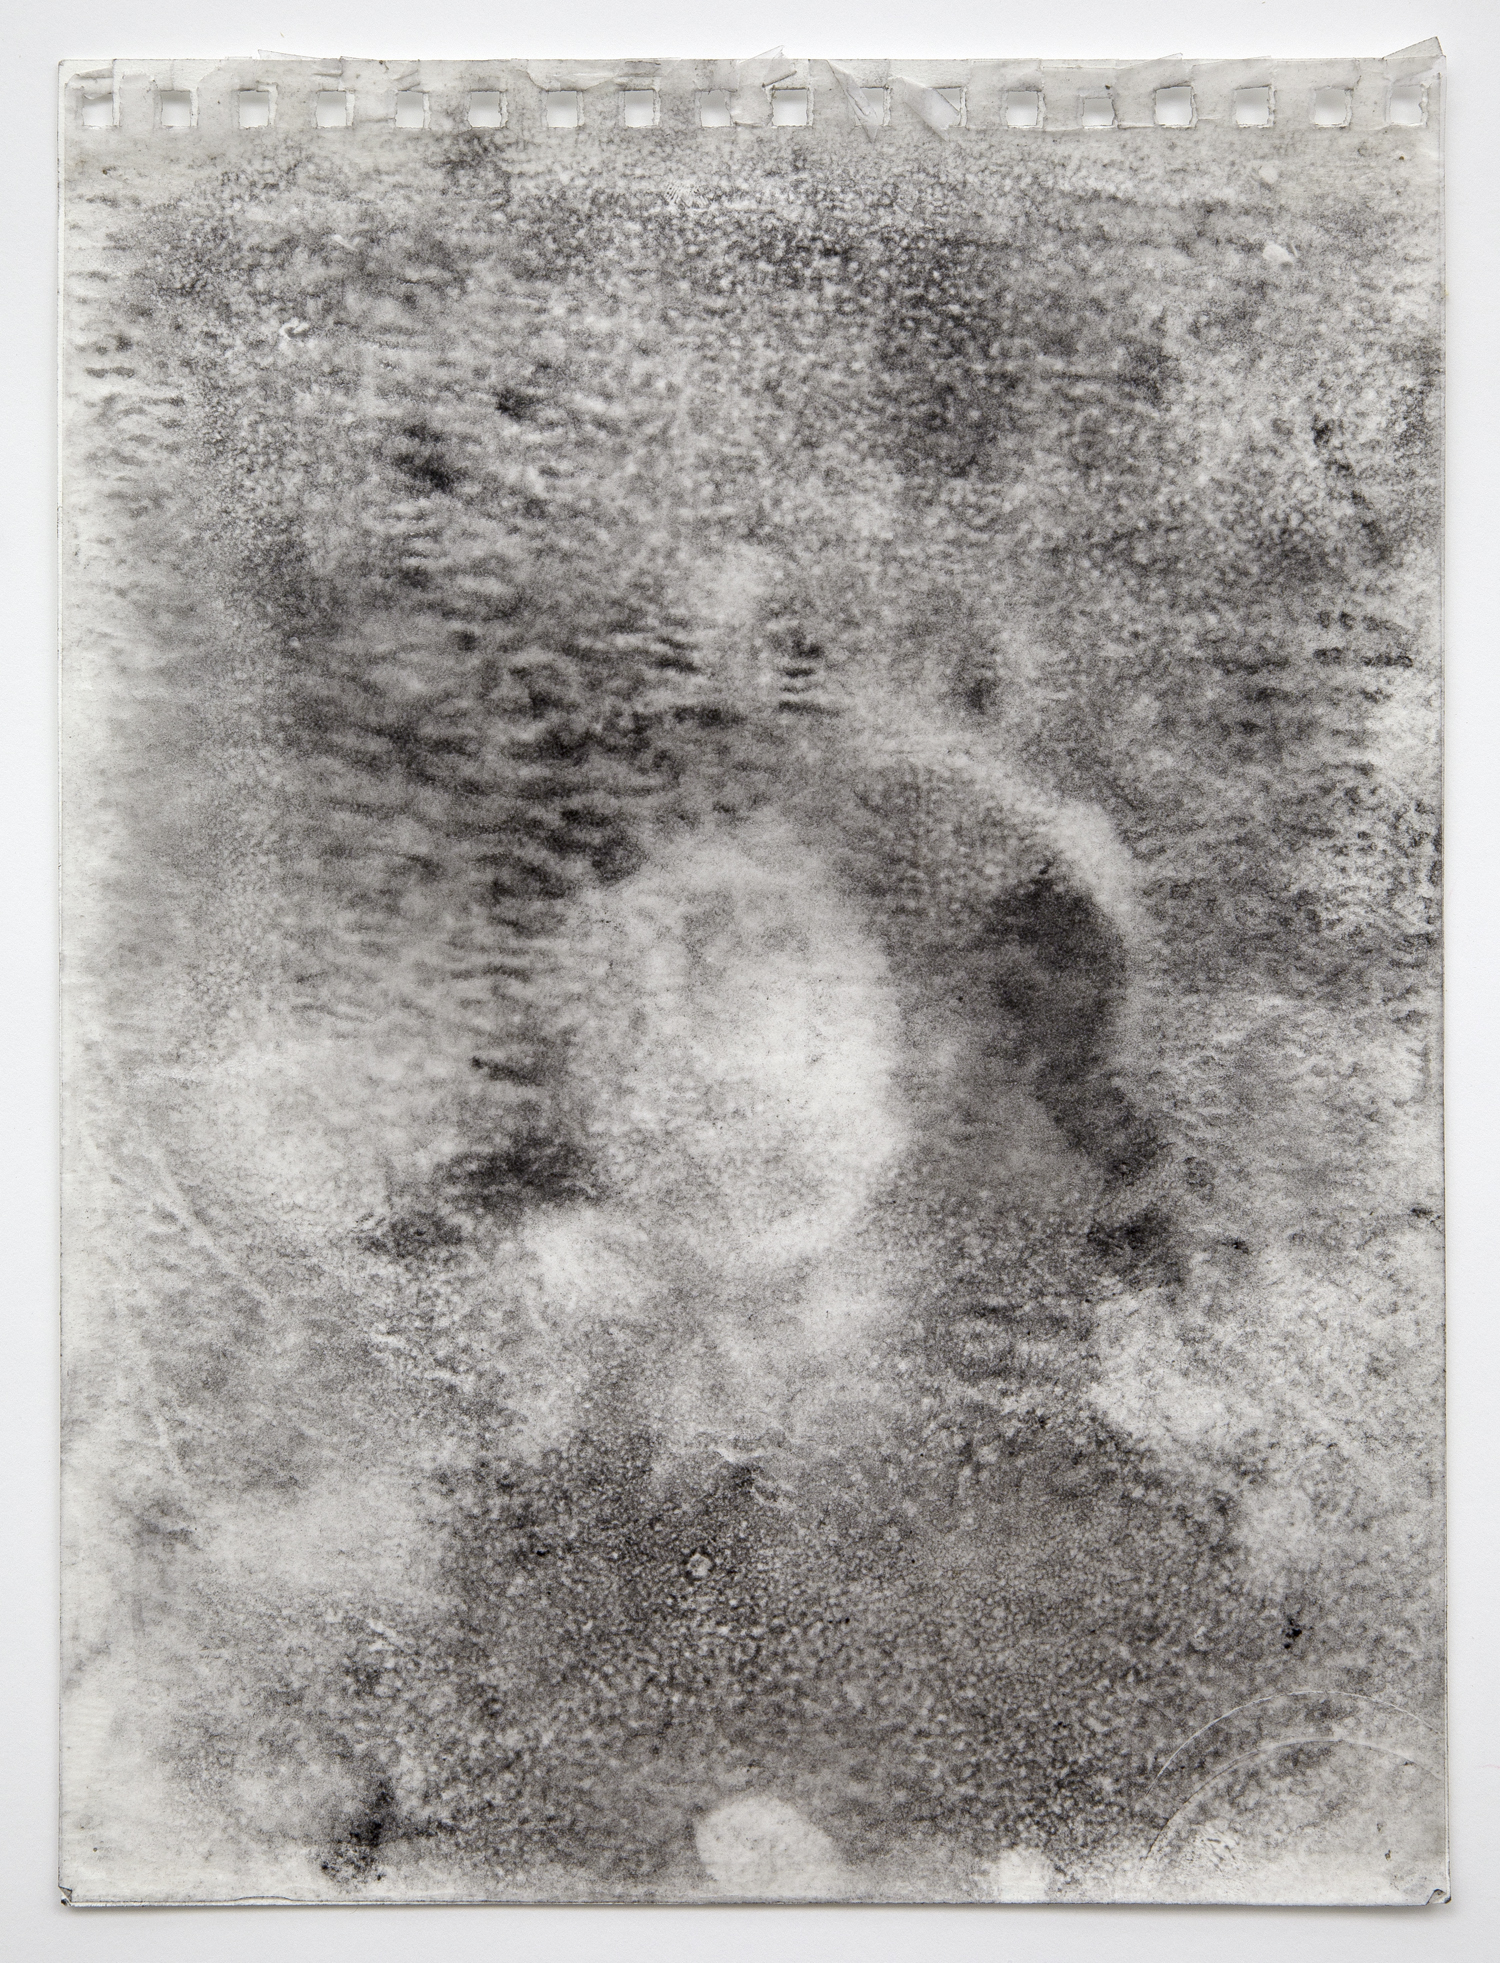 Interleaf Drawing (after Courbet), 2012